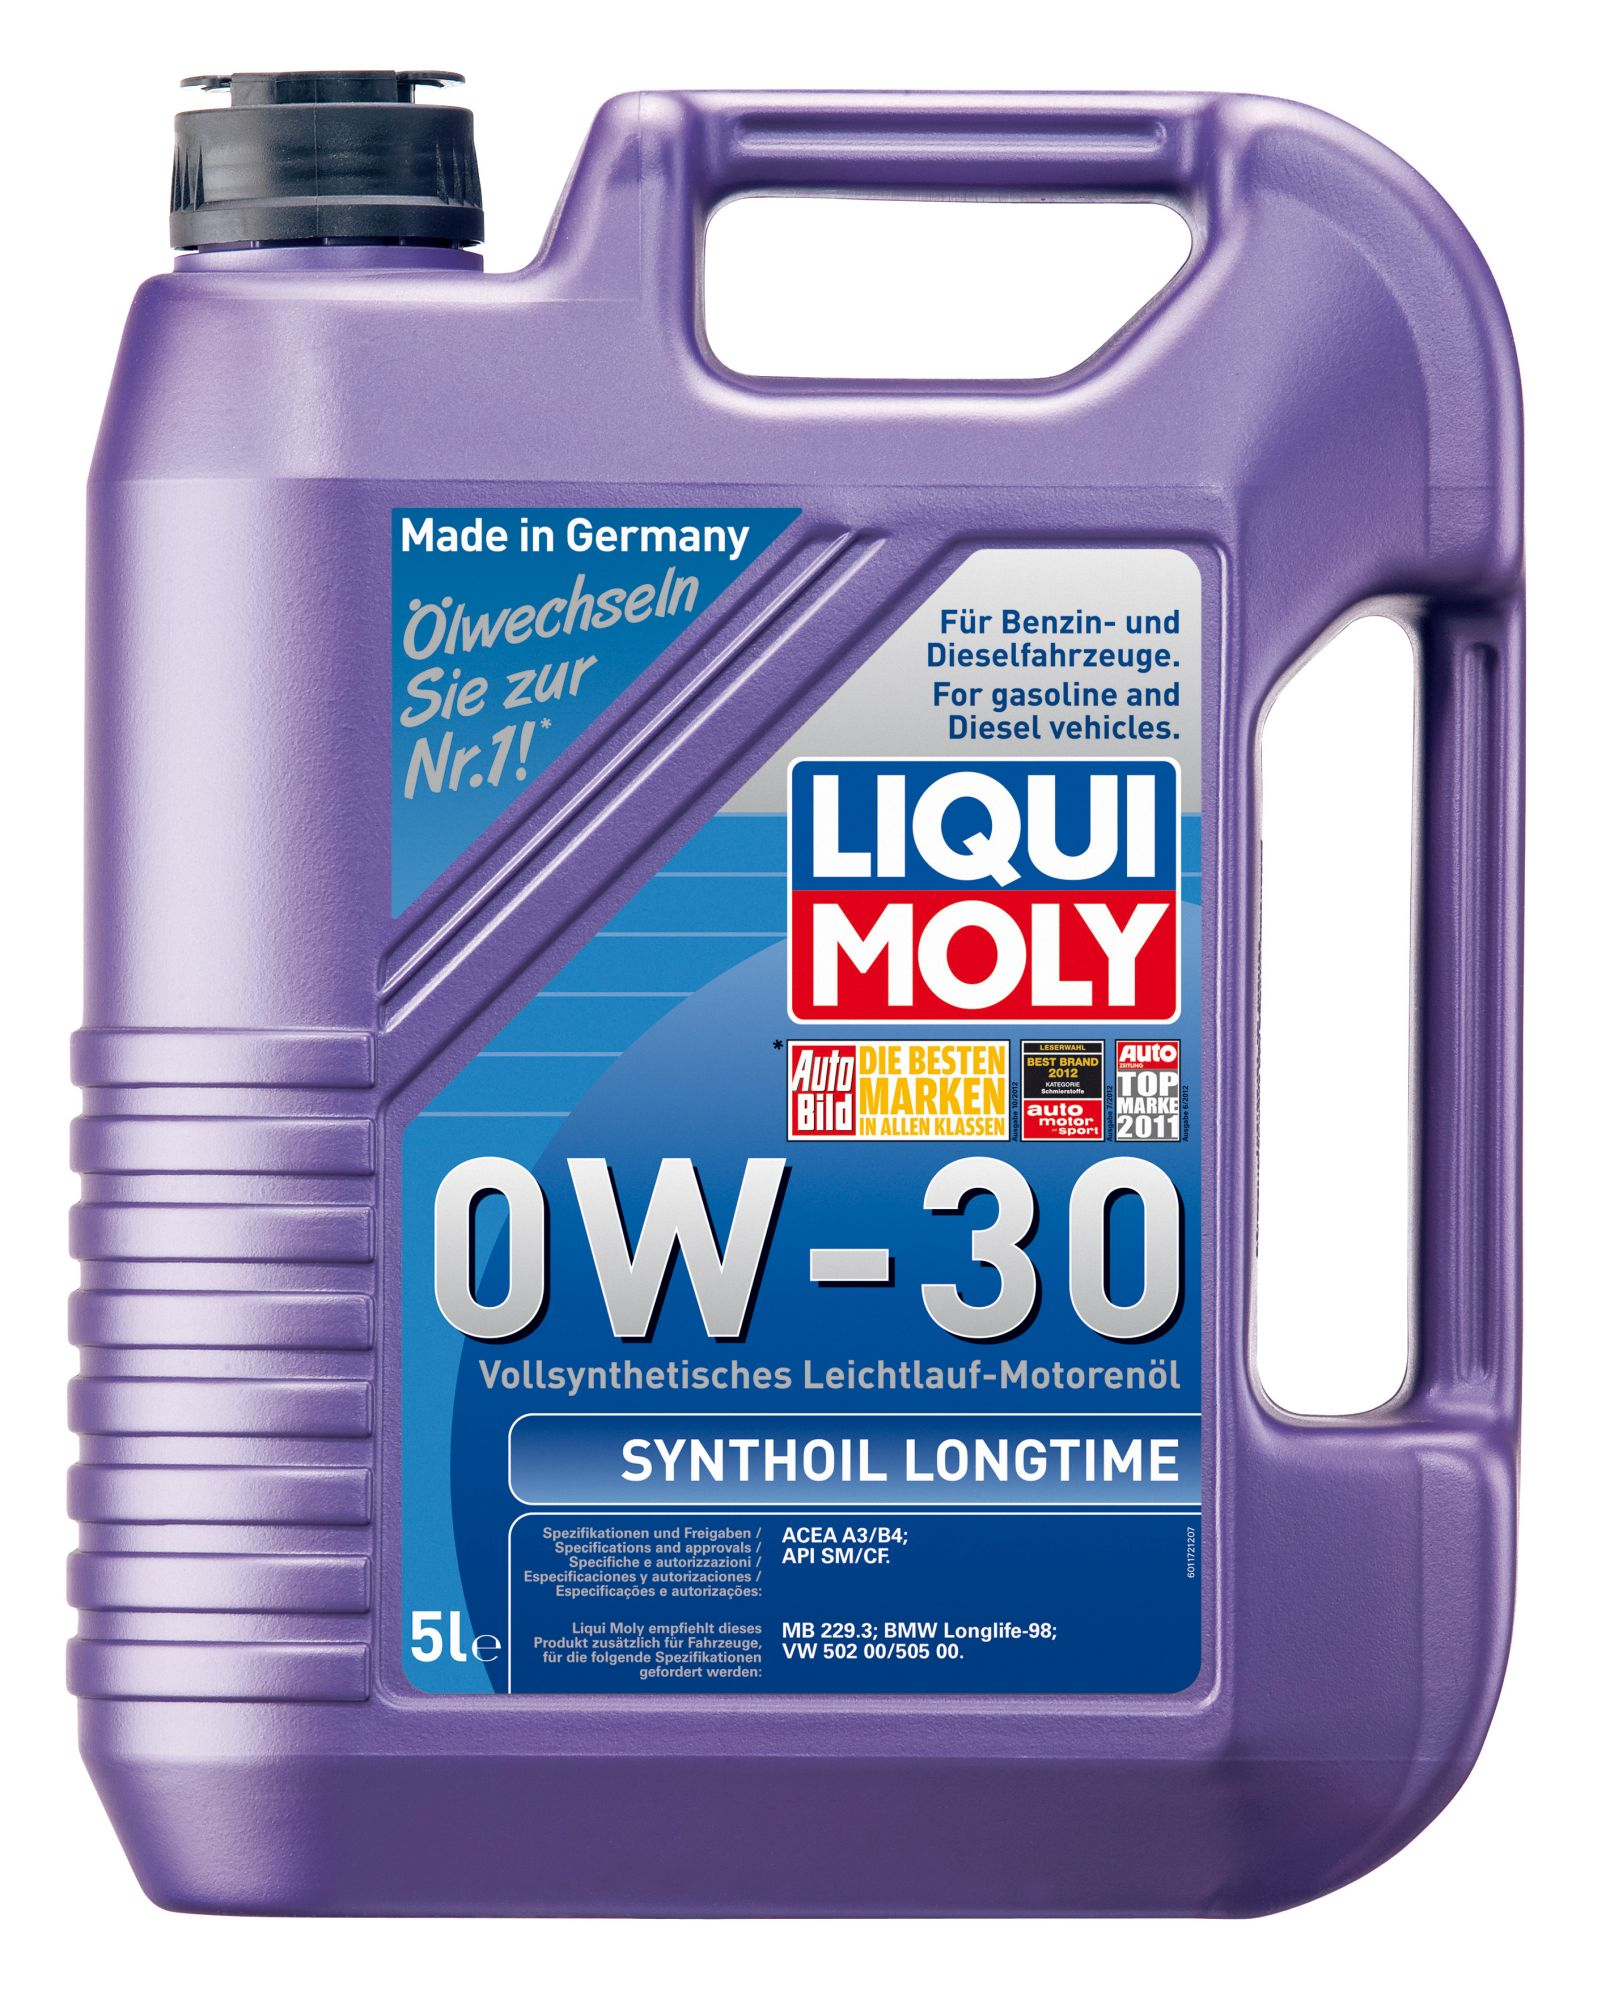 ULEI MOTOR LIQUI MOLY 1172 SYNTHOIL LONGTIME 0W30 5L